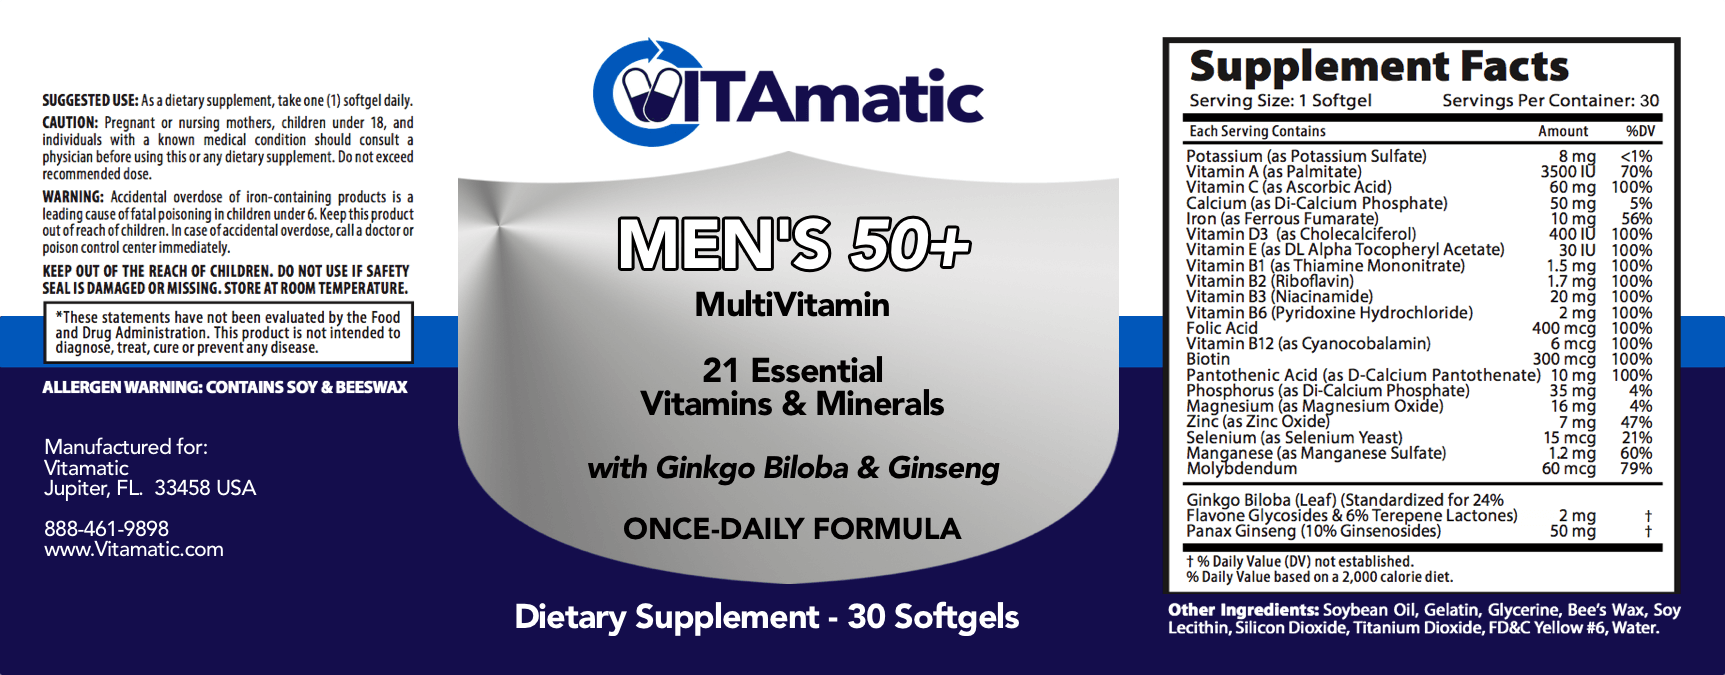 mens_over50_multivitamin_label